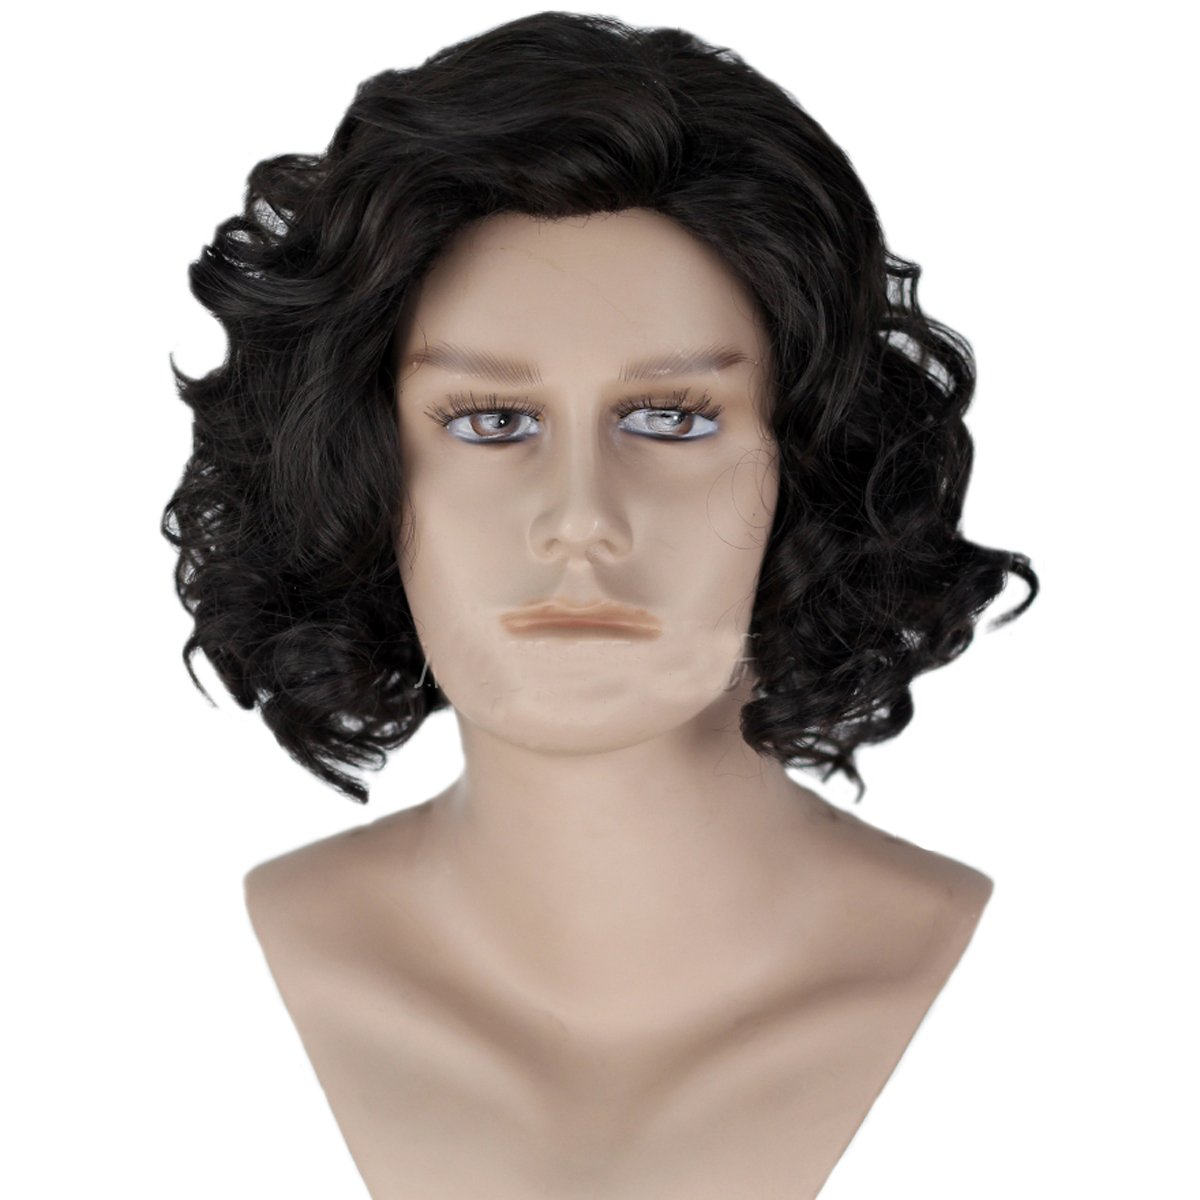 Curly Halloween Cosplay Costume Wigs